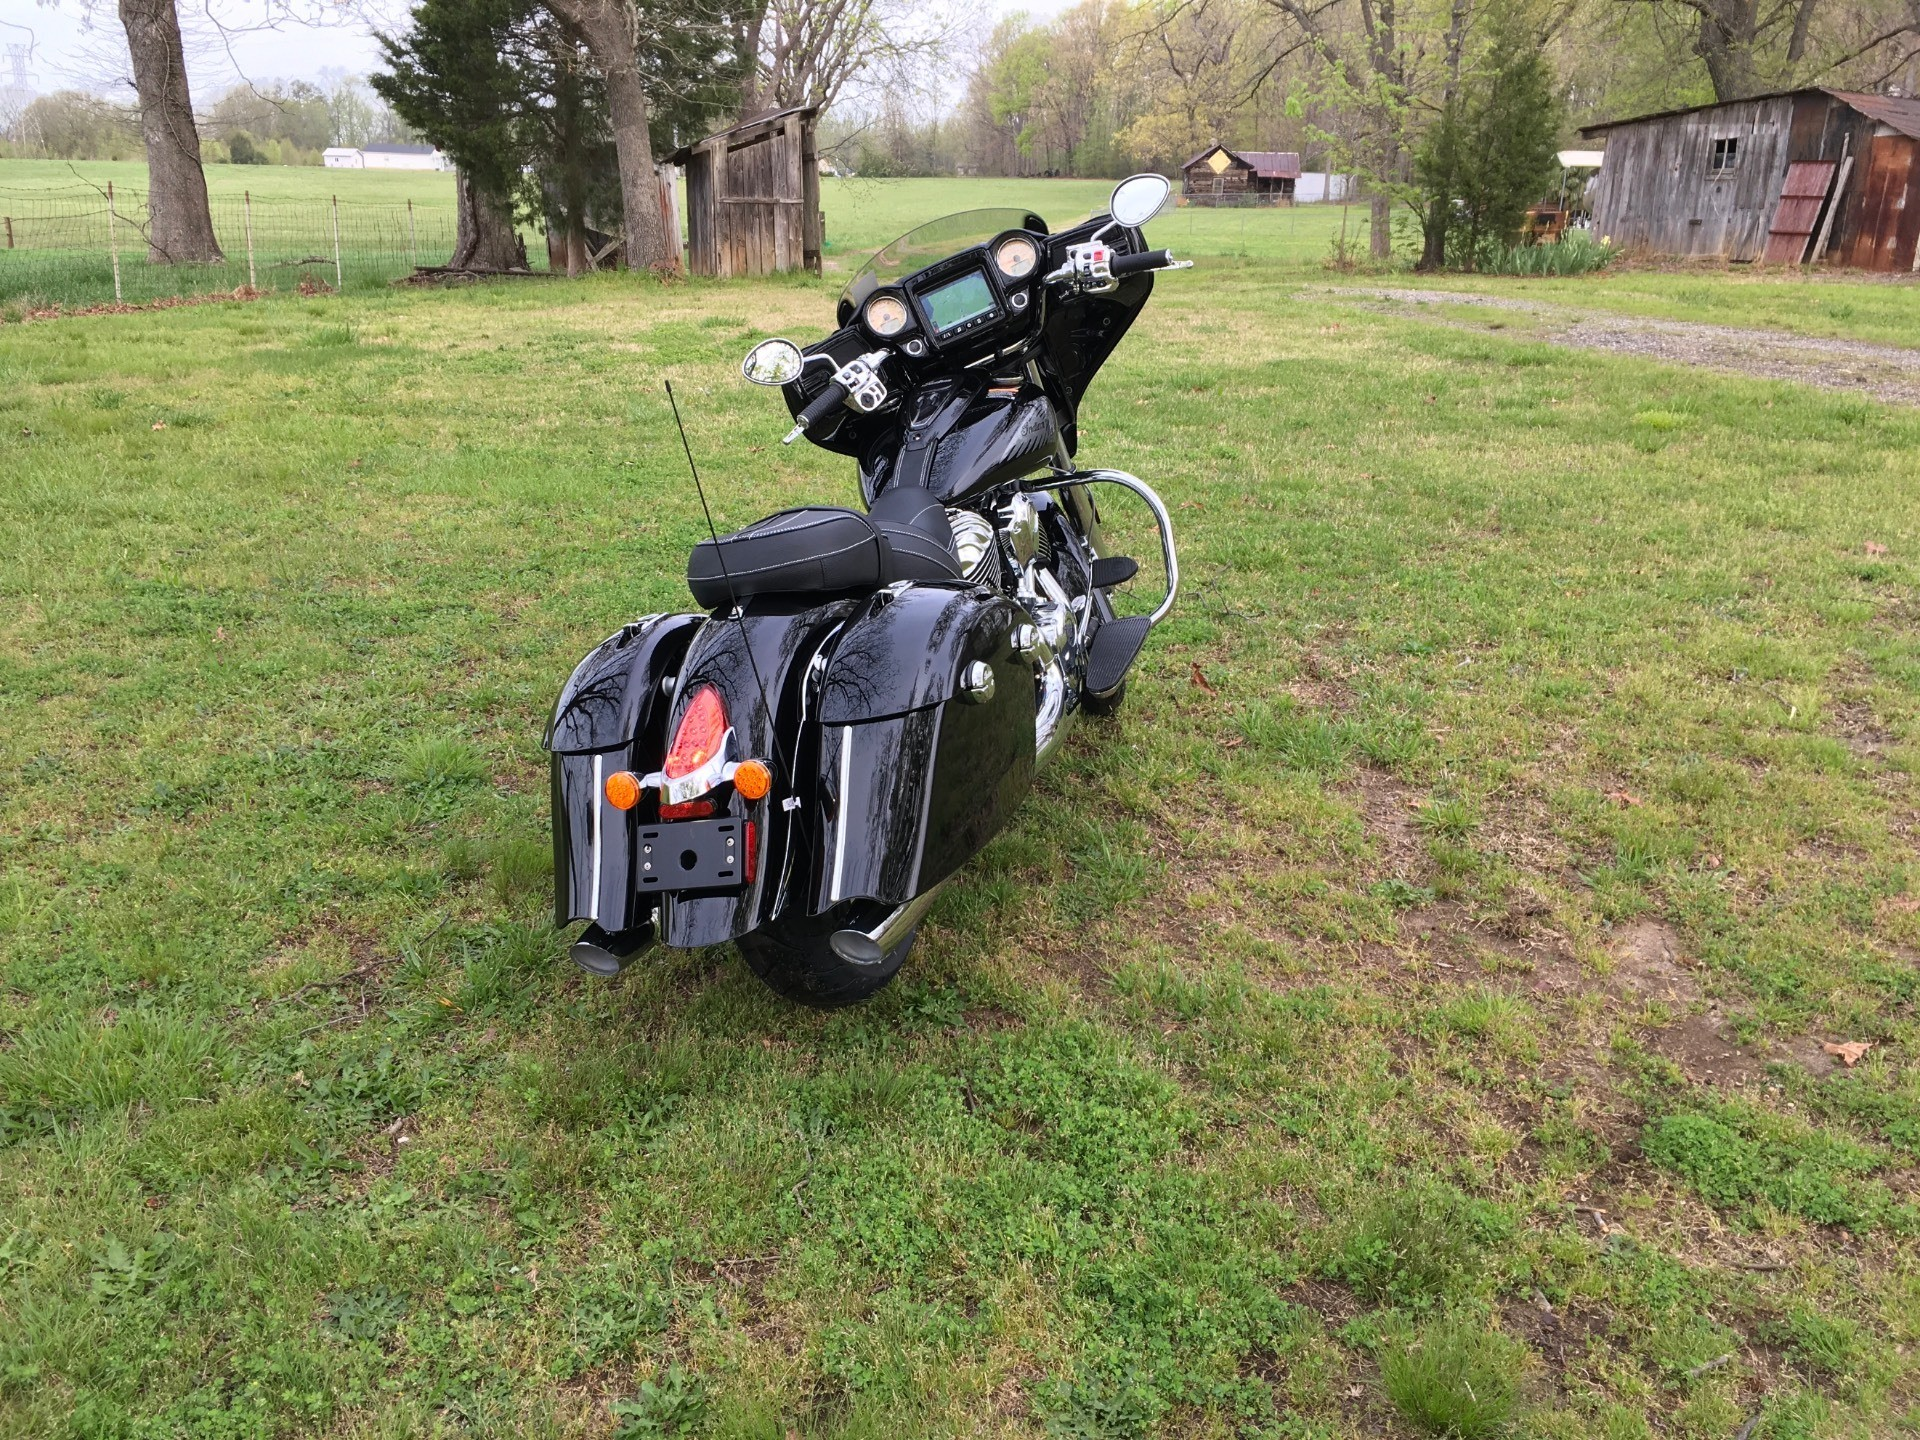 2017 Indian Chieftain Limited 6